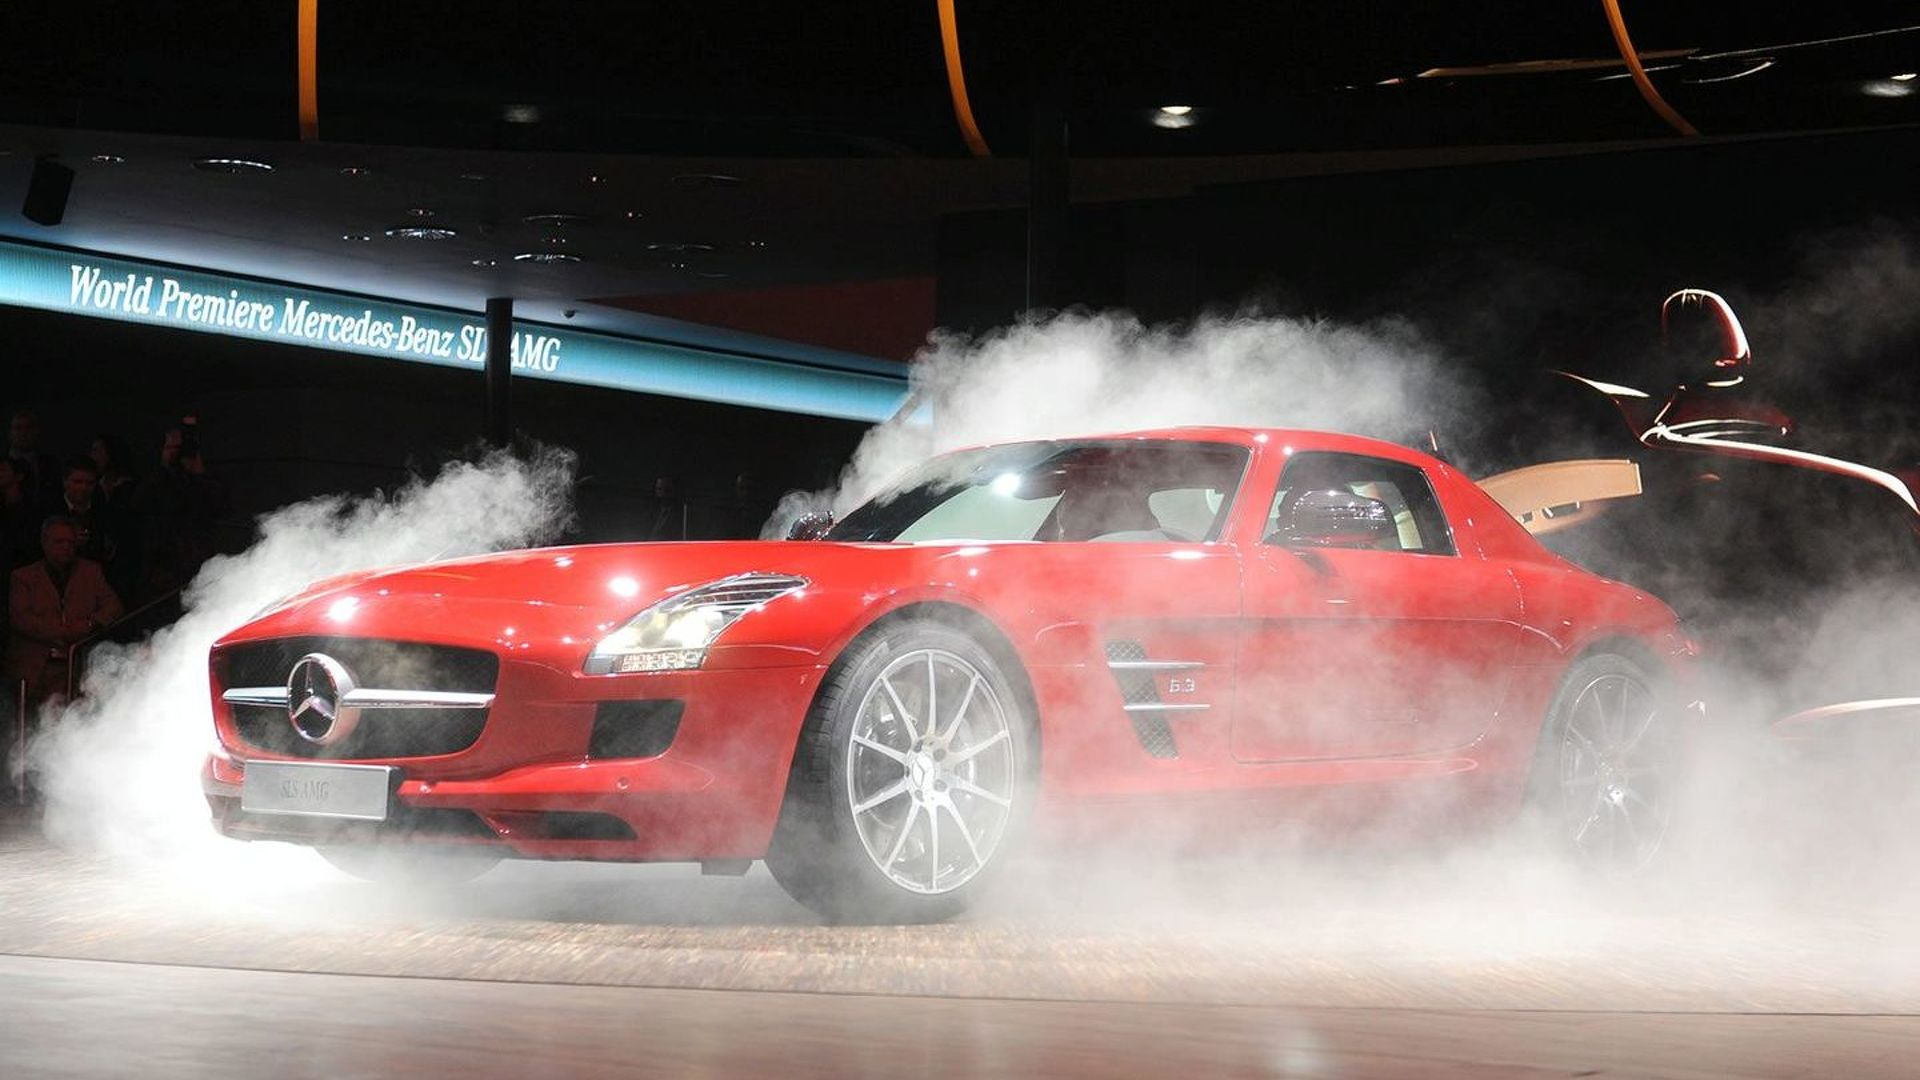 Mercedes SLS AMG in the Flesh at 2009 IAA